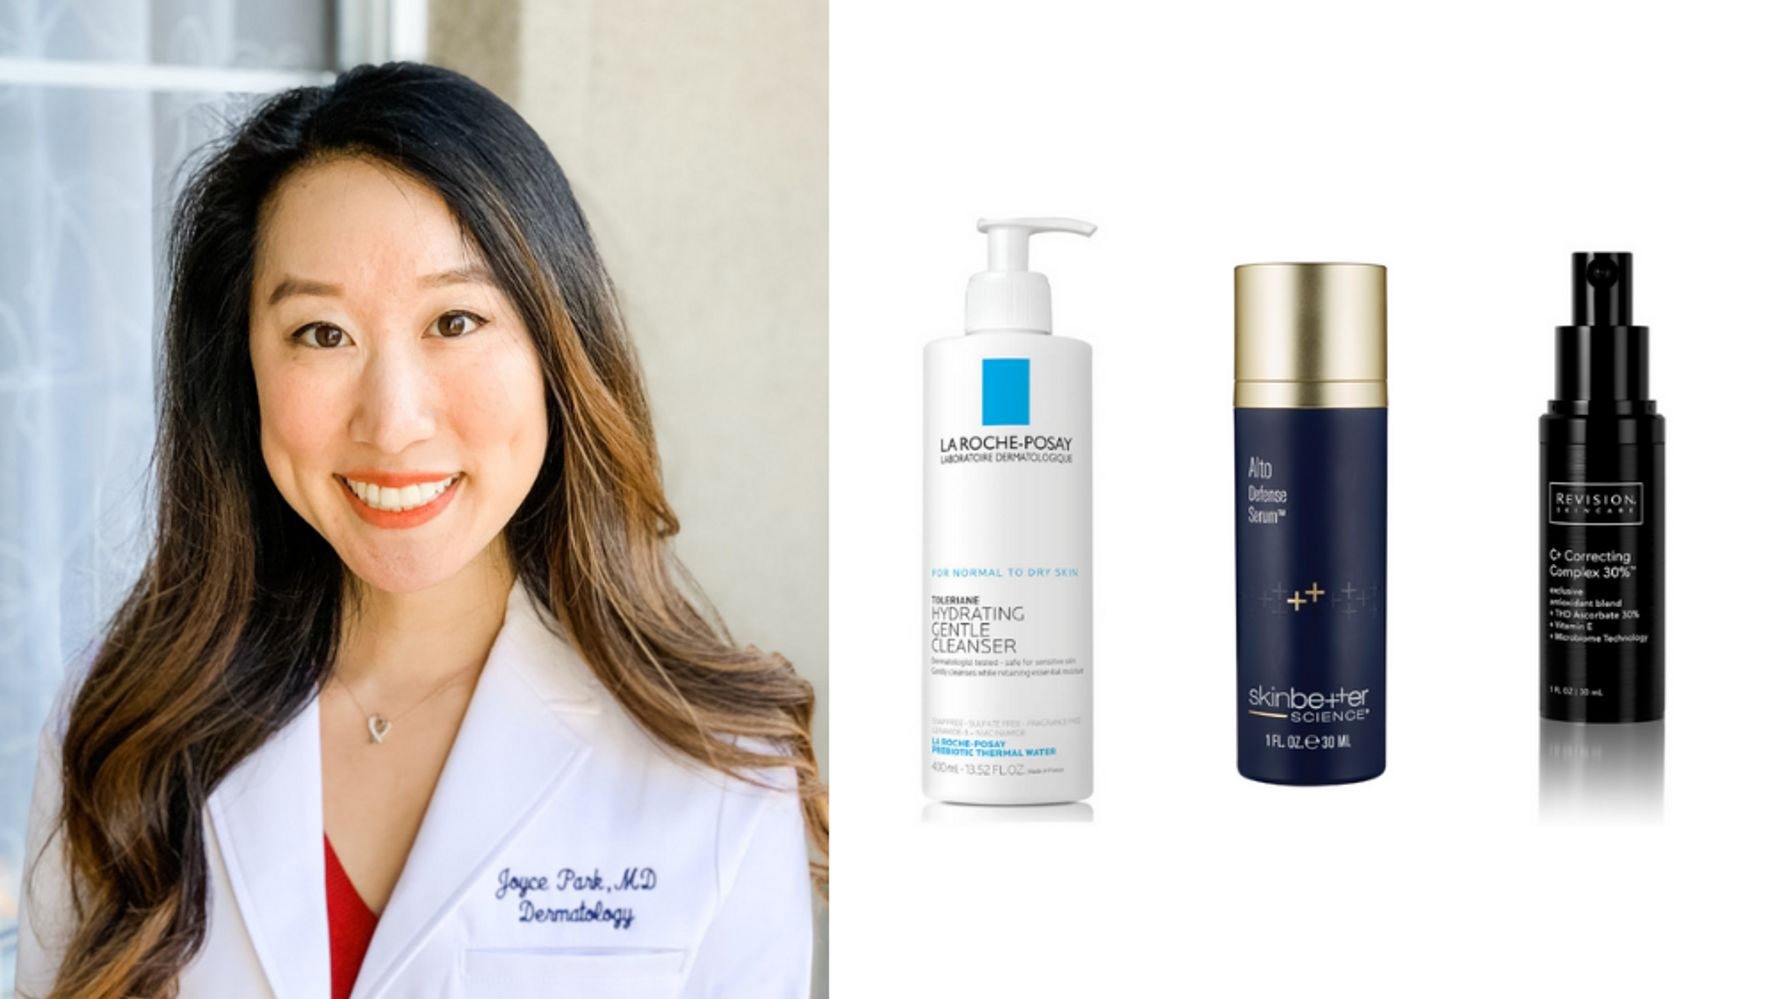 3 Dermatologists Reveal Their Morning Skin Care Routines